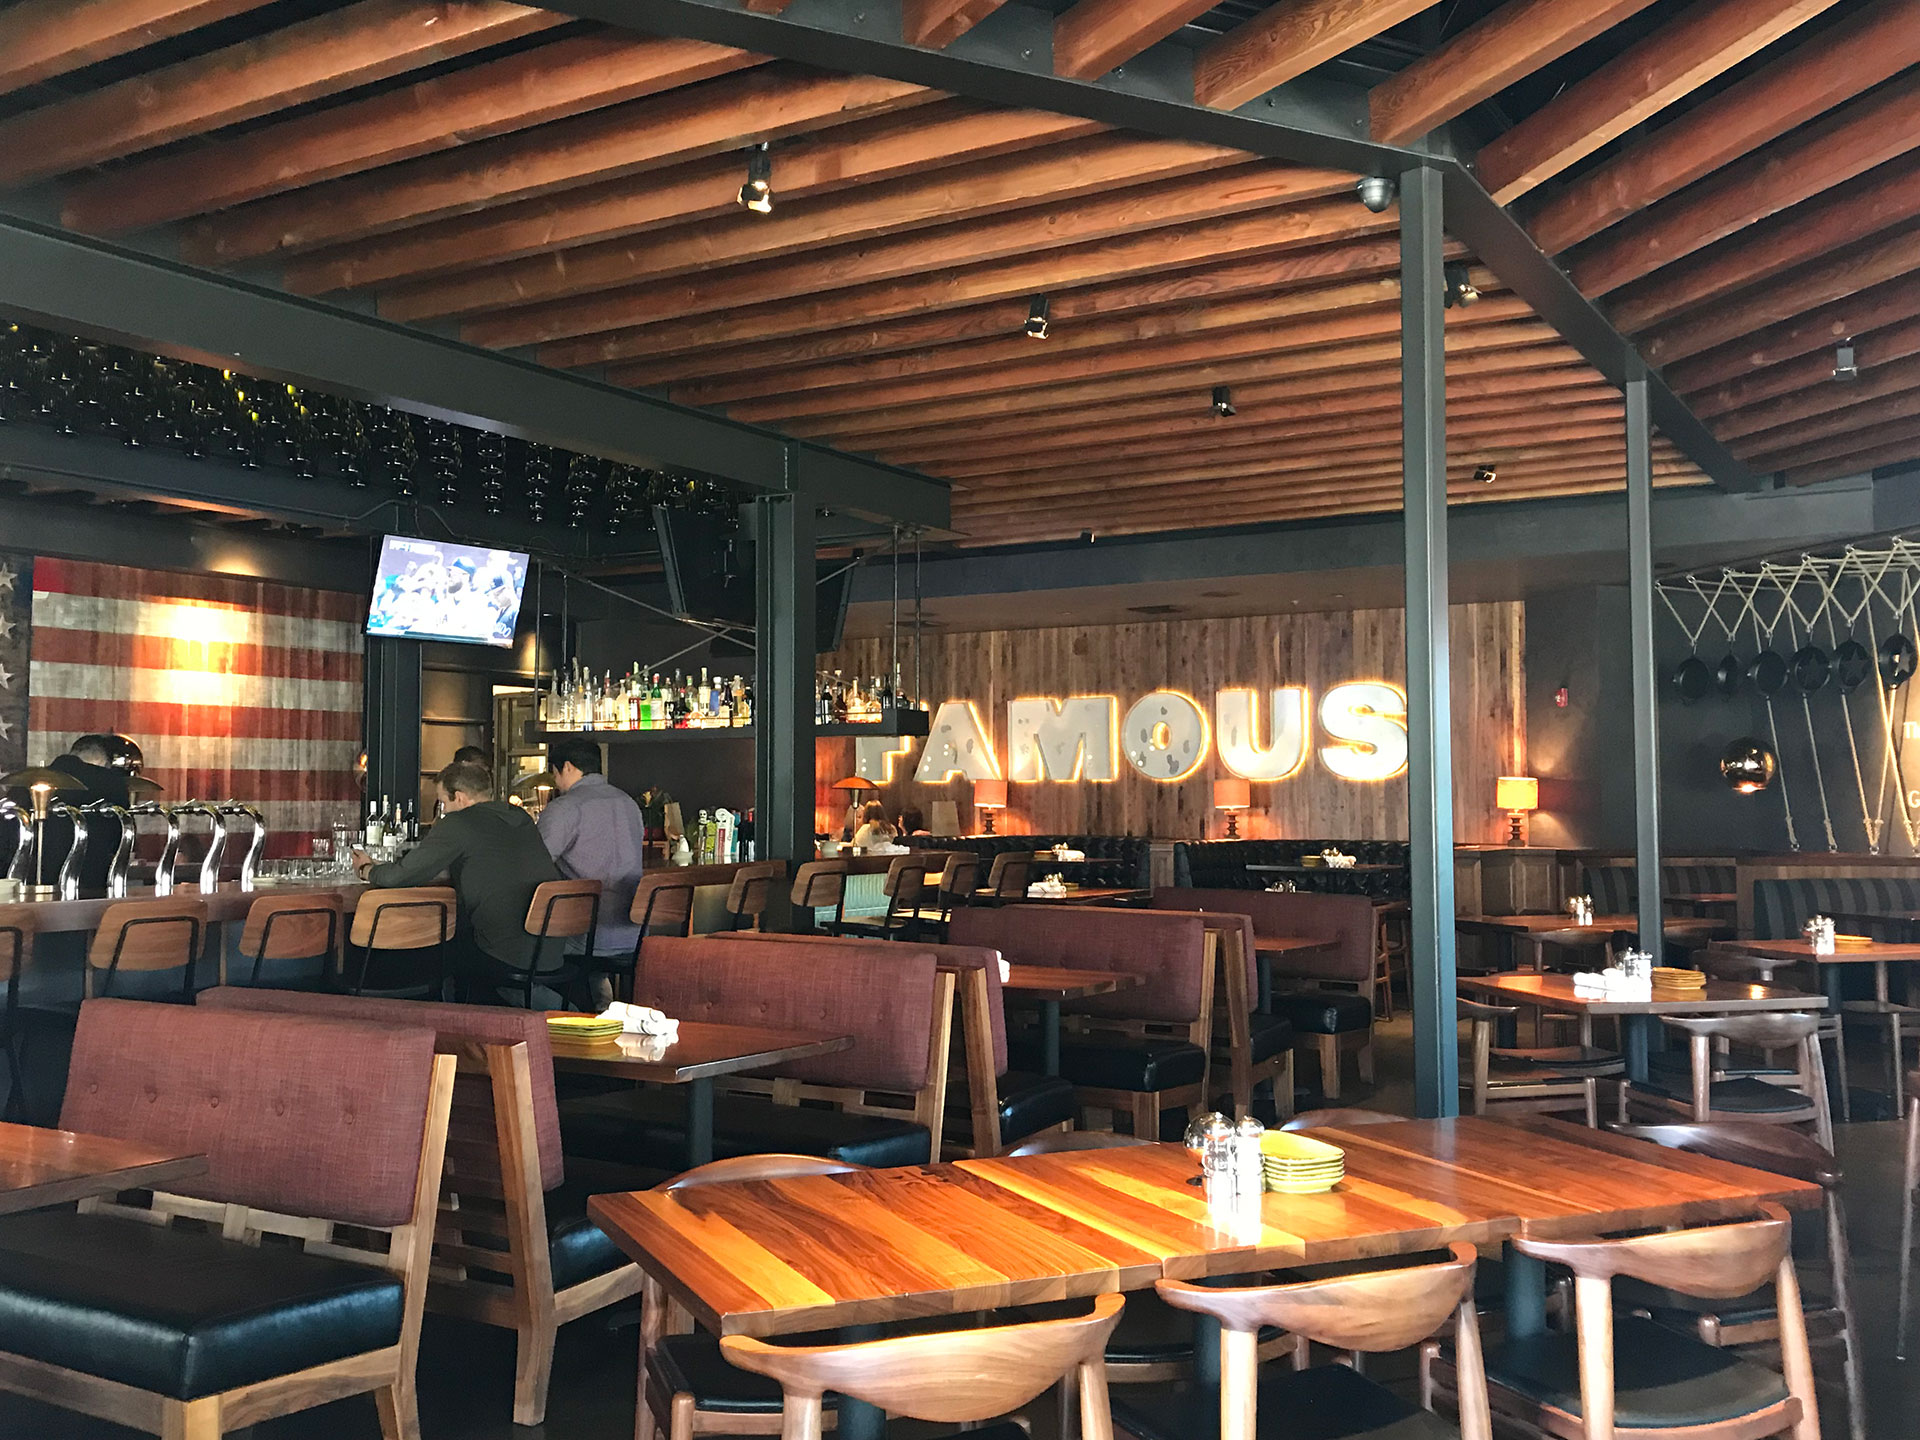 Jimmy's Brea offers a modern bar and dining experience